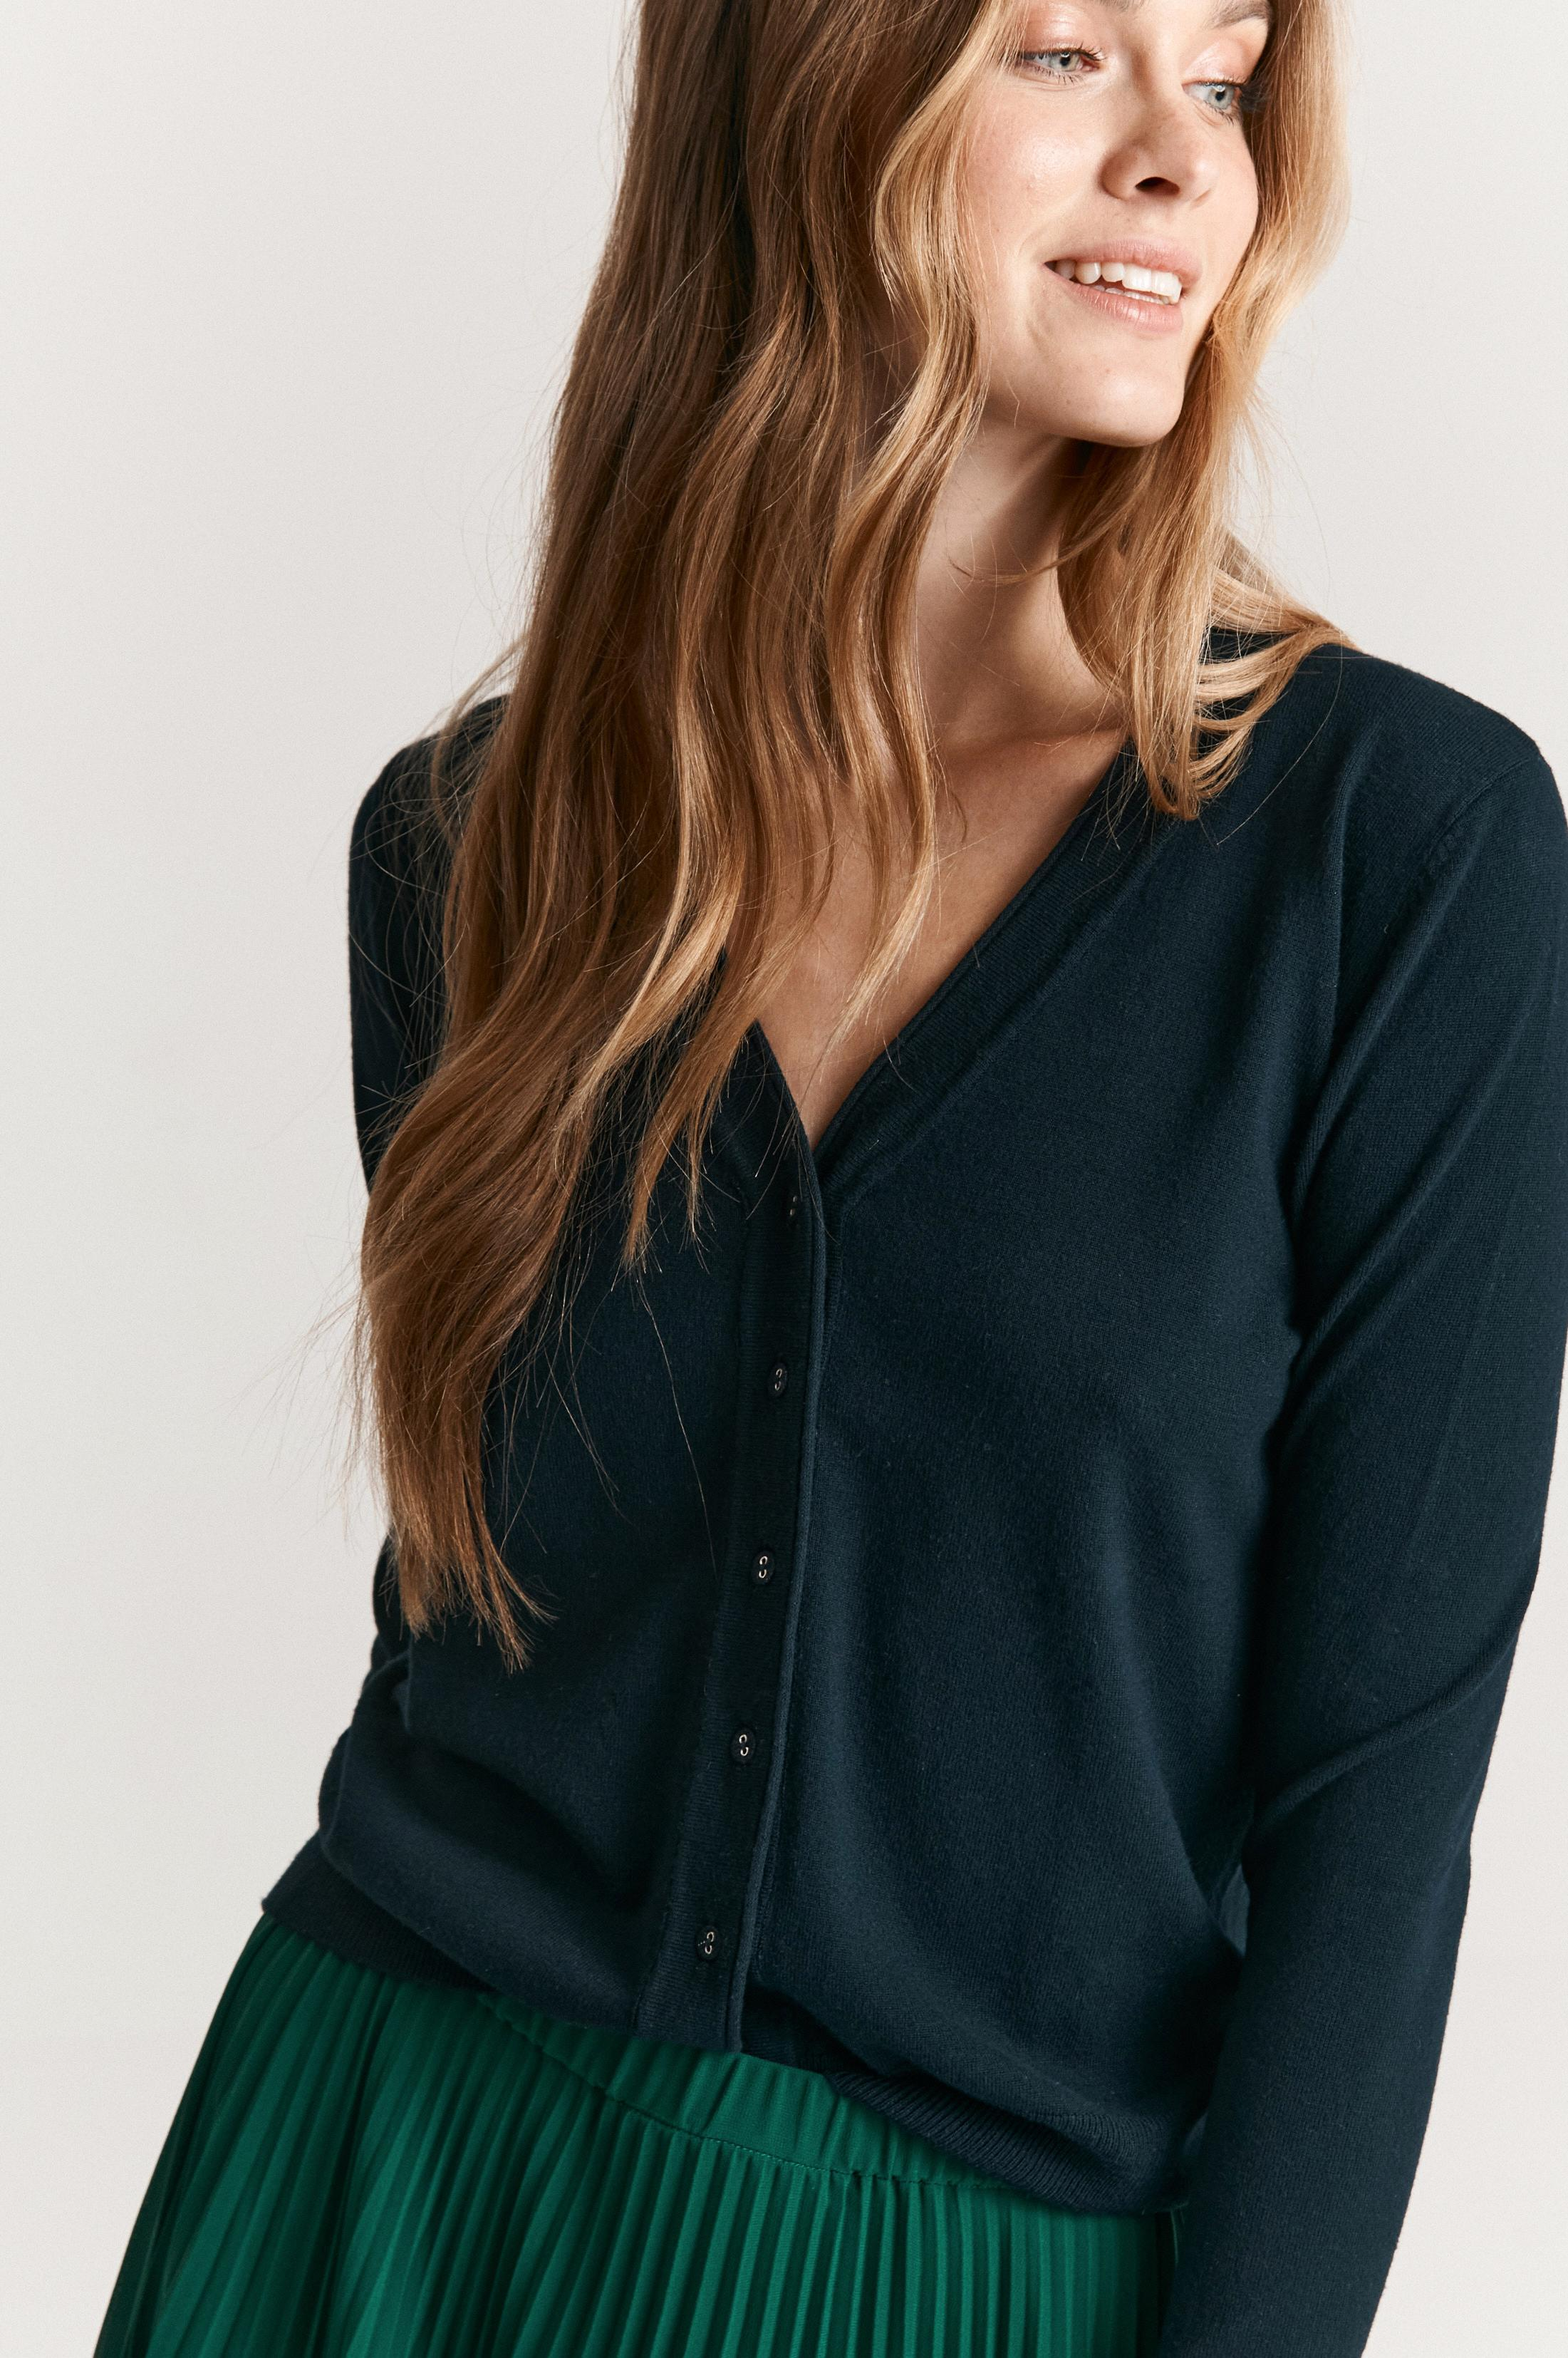 LADIES' BUTTONED-UP SWEATER SELMA